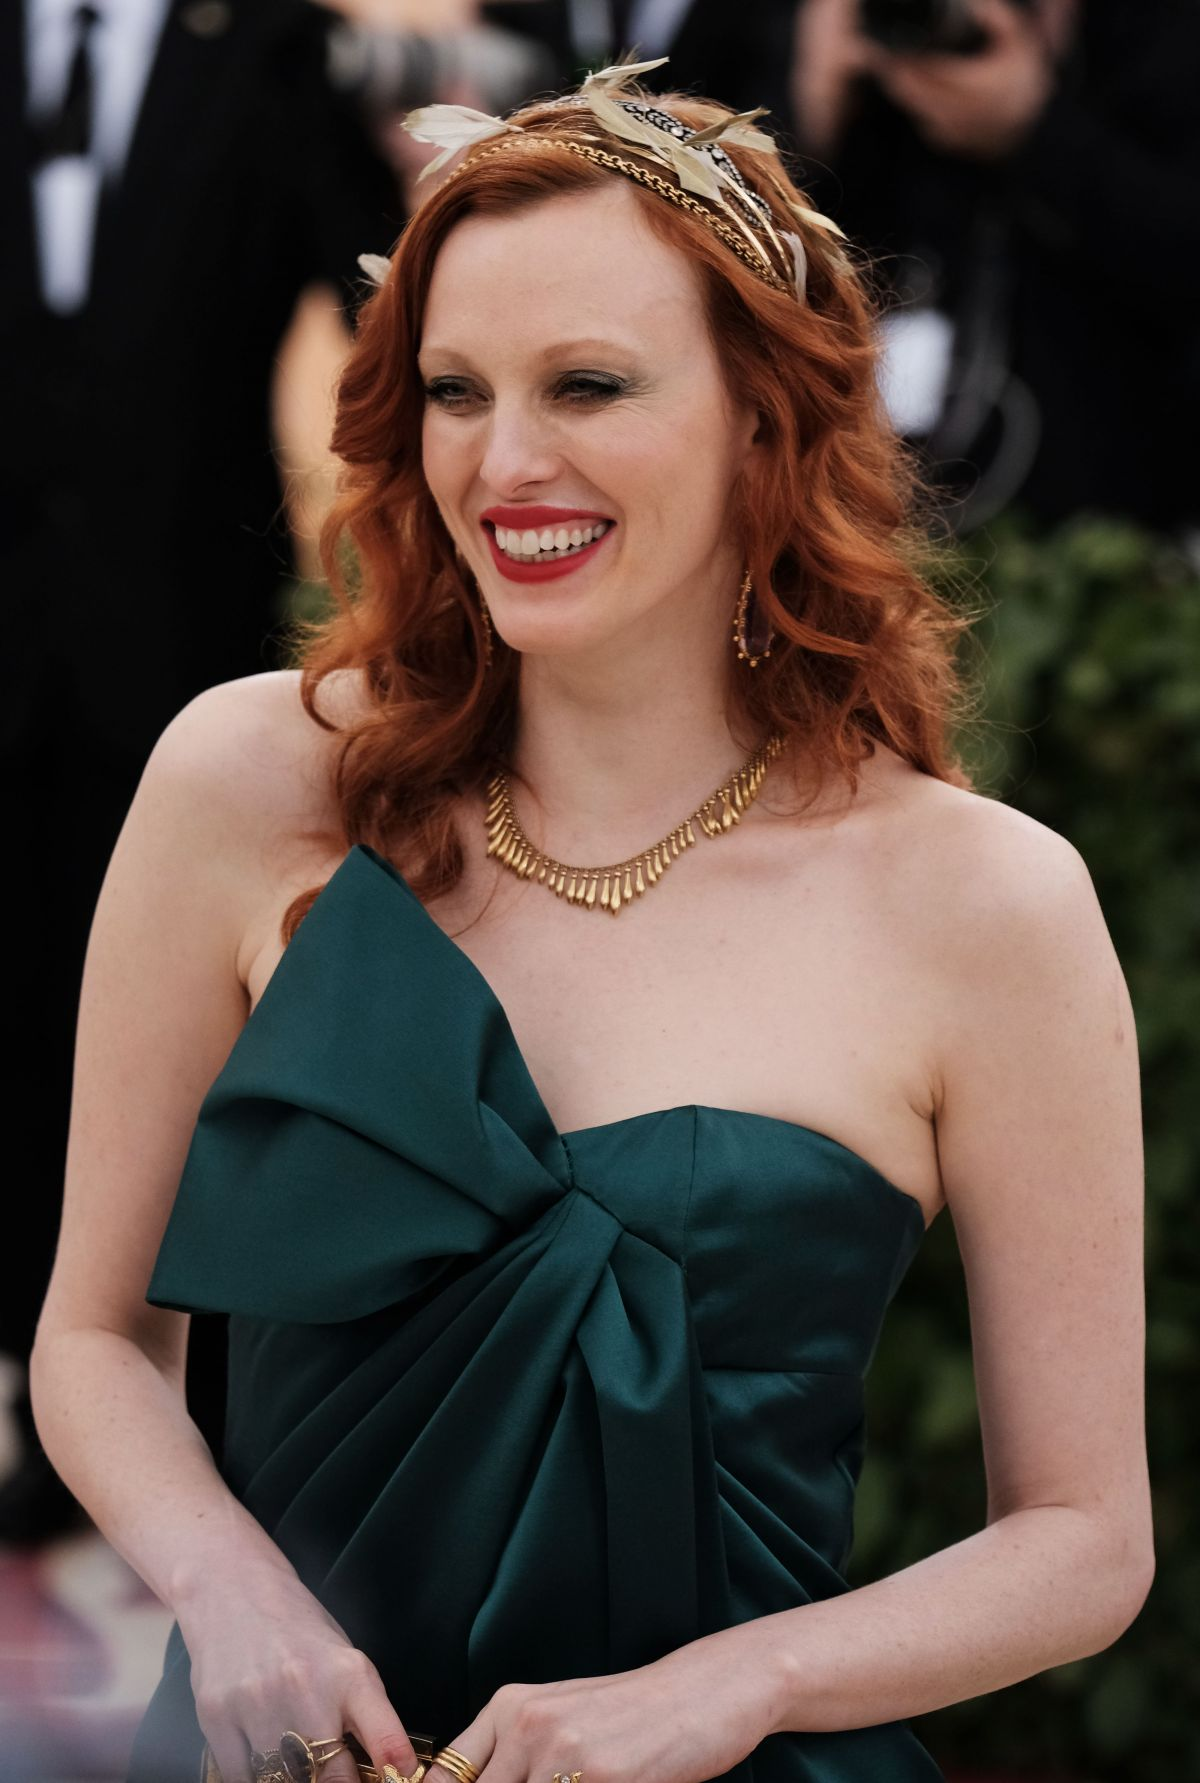 Pictures Karen Elson naked (89 photos), Tits, Paparazzi, Boobs, braless 2020